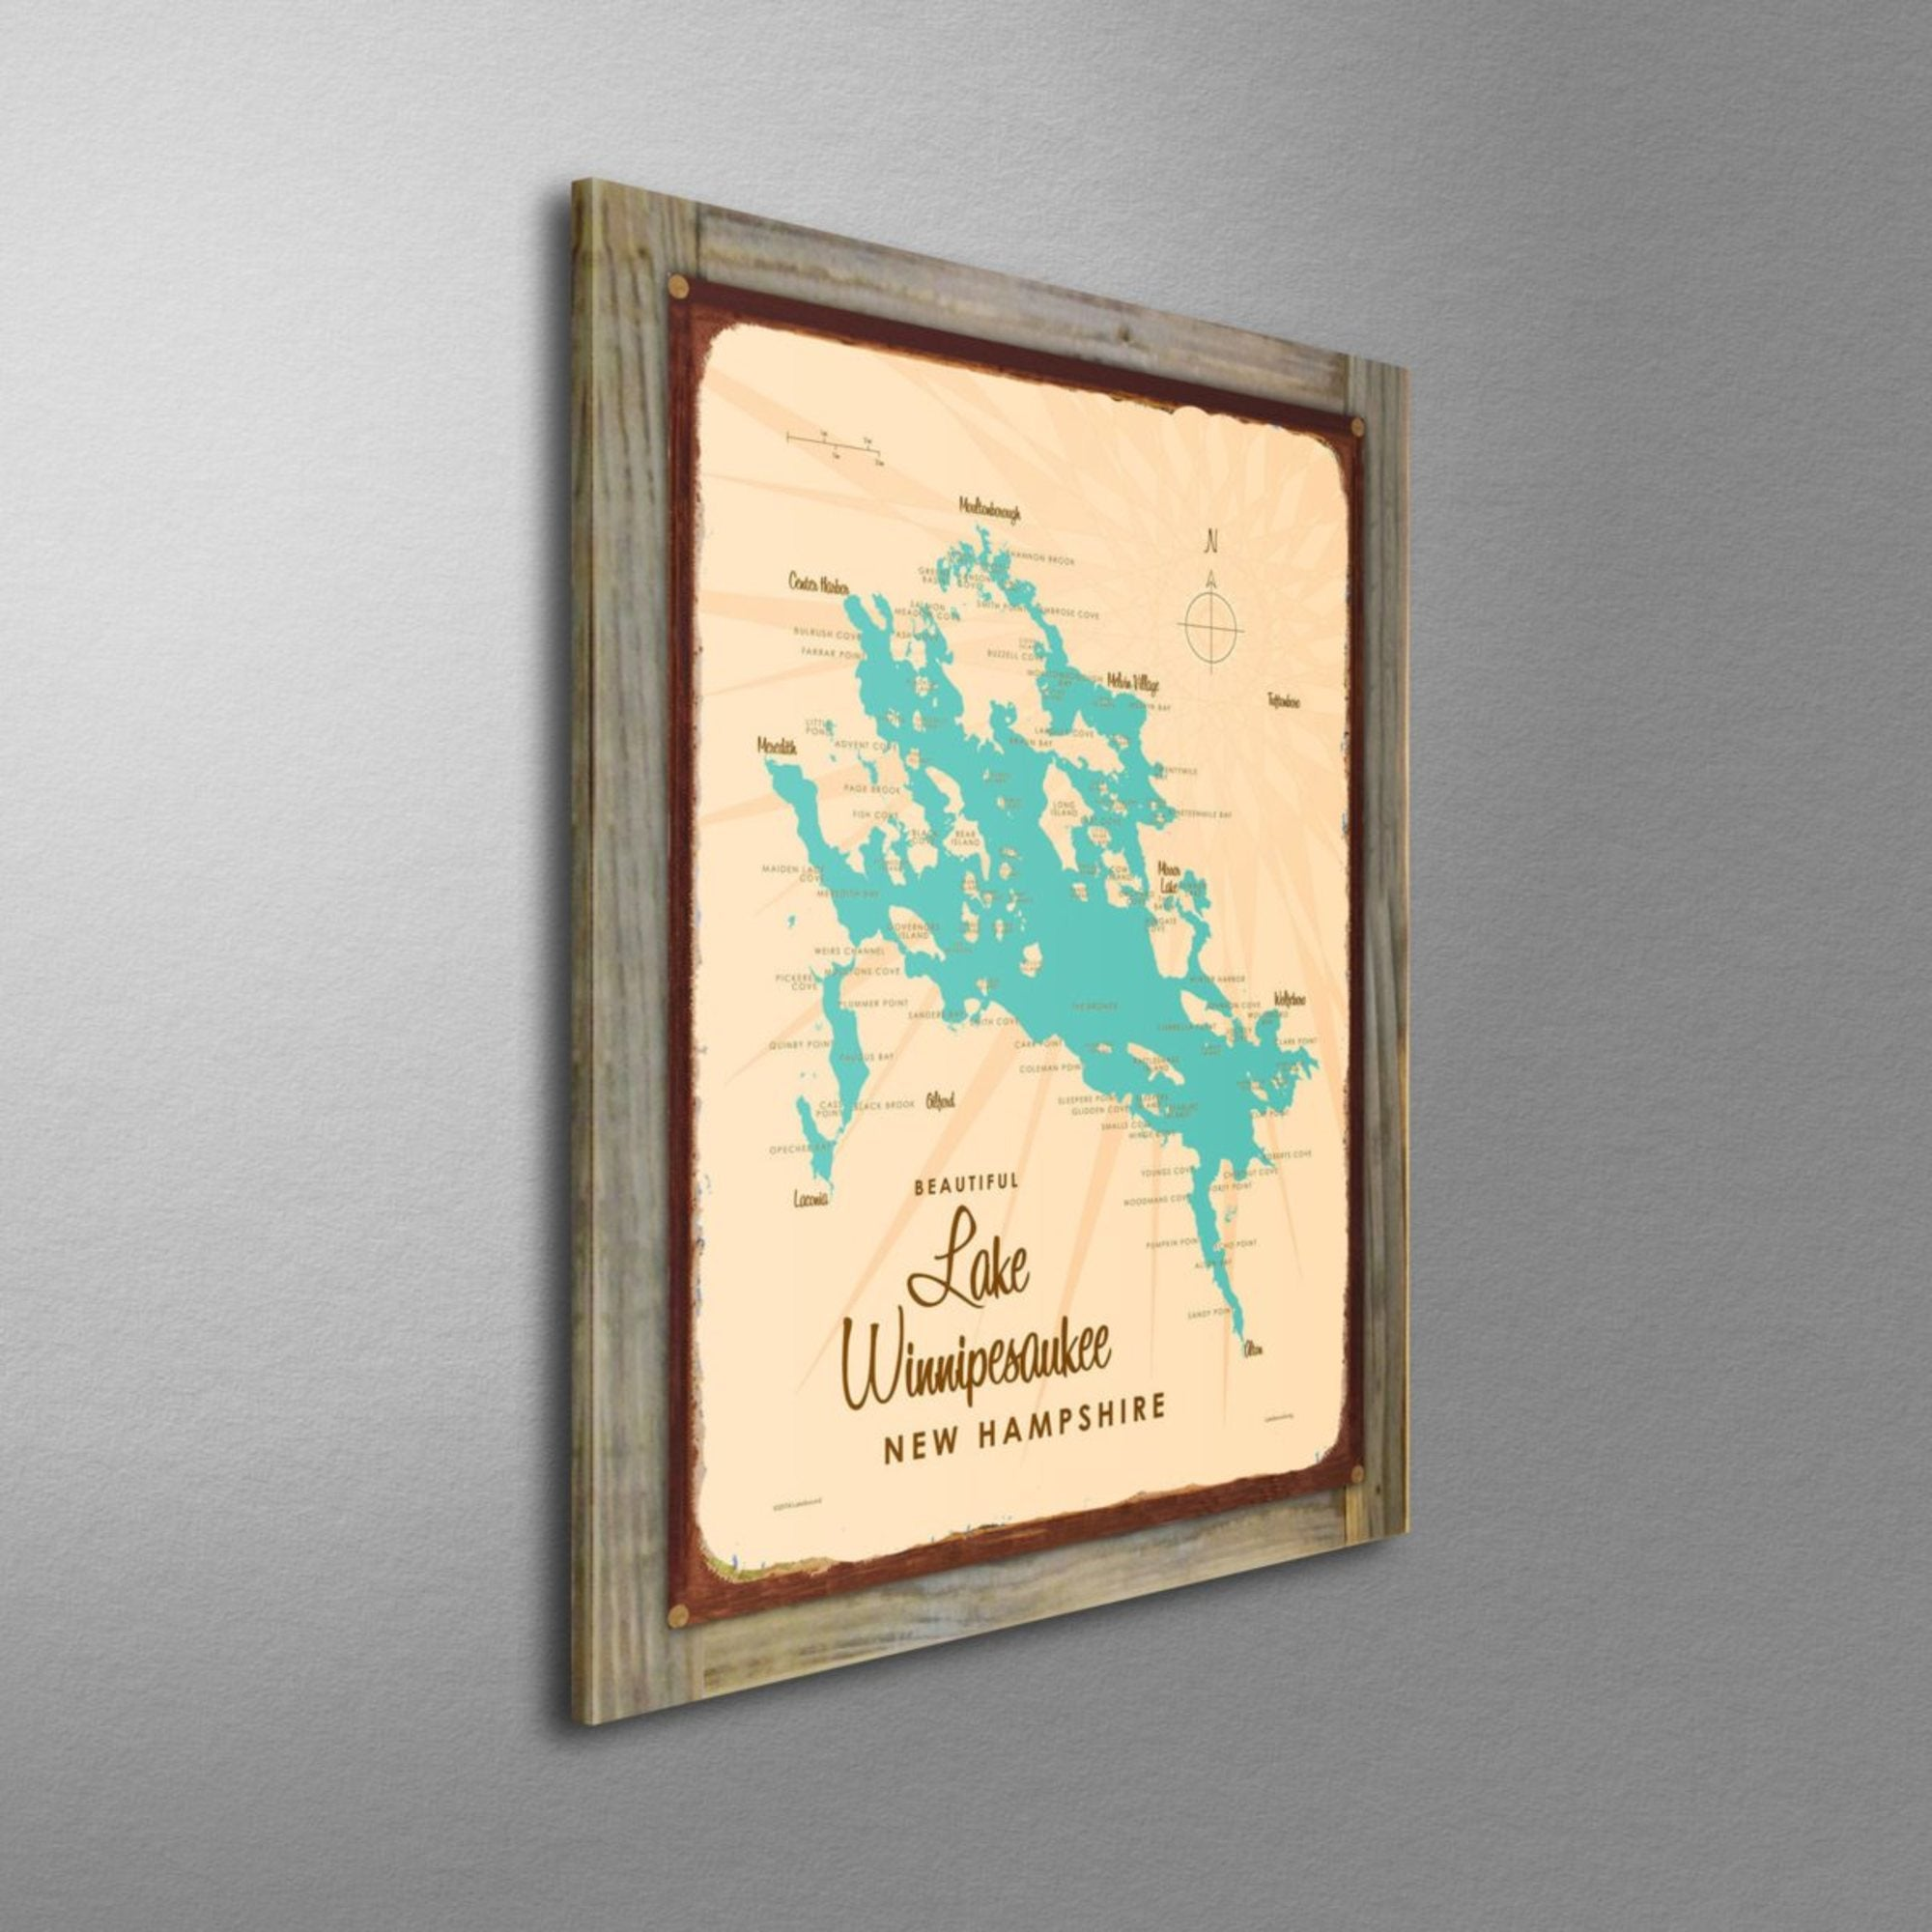 Lake Winnipesaukee New Hampshire, Wood-Mounted Rustic Metal Sign Map Art